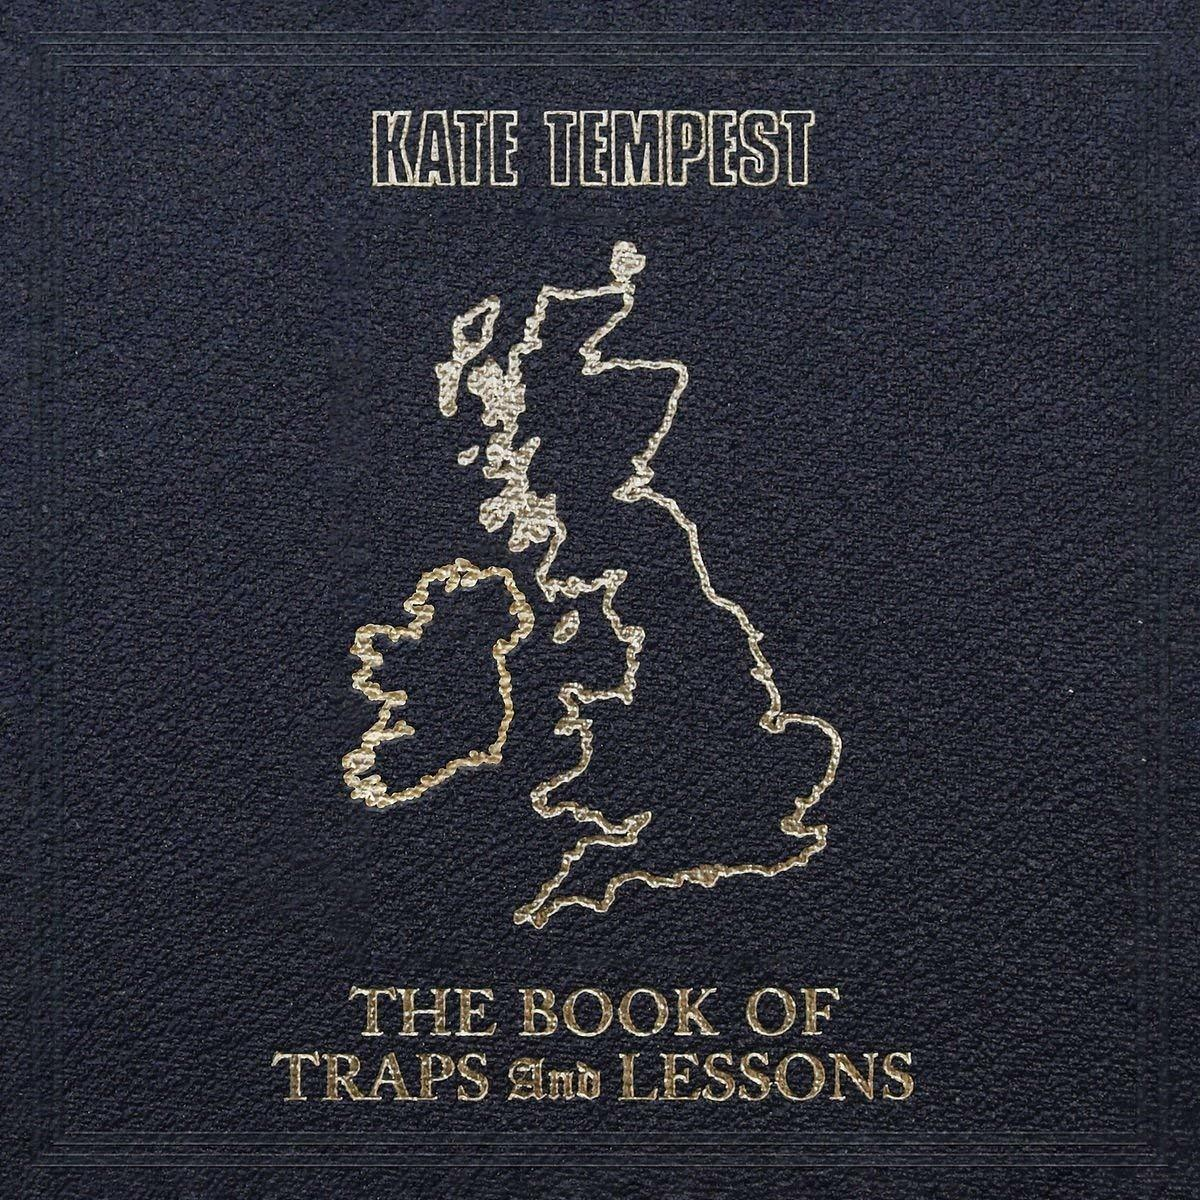 Kate Tempest – 'The book of traps and lessons'